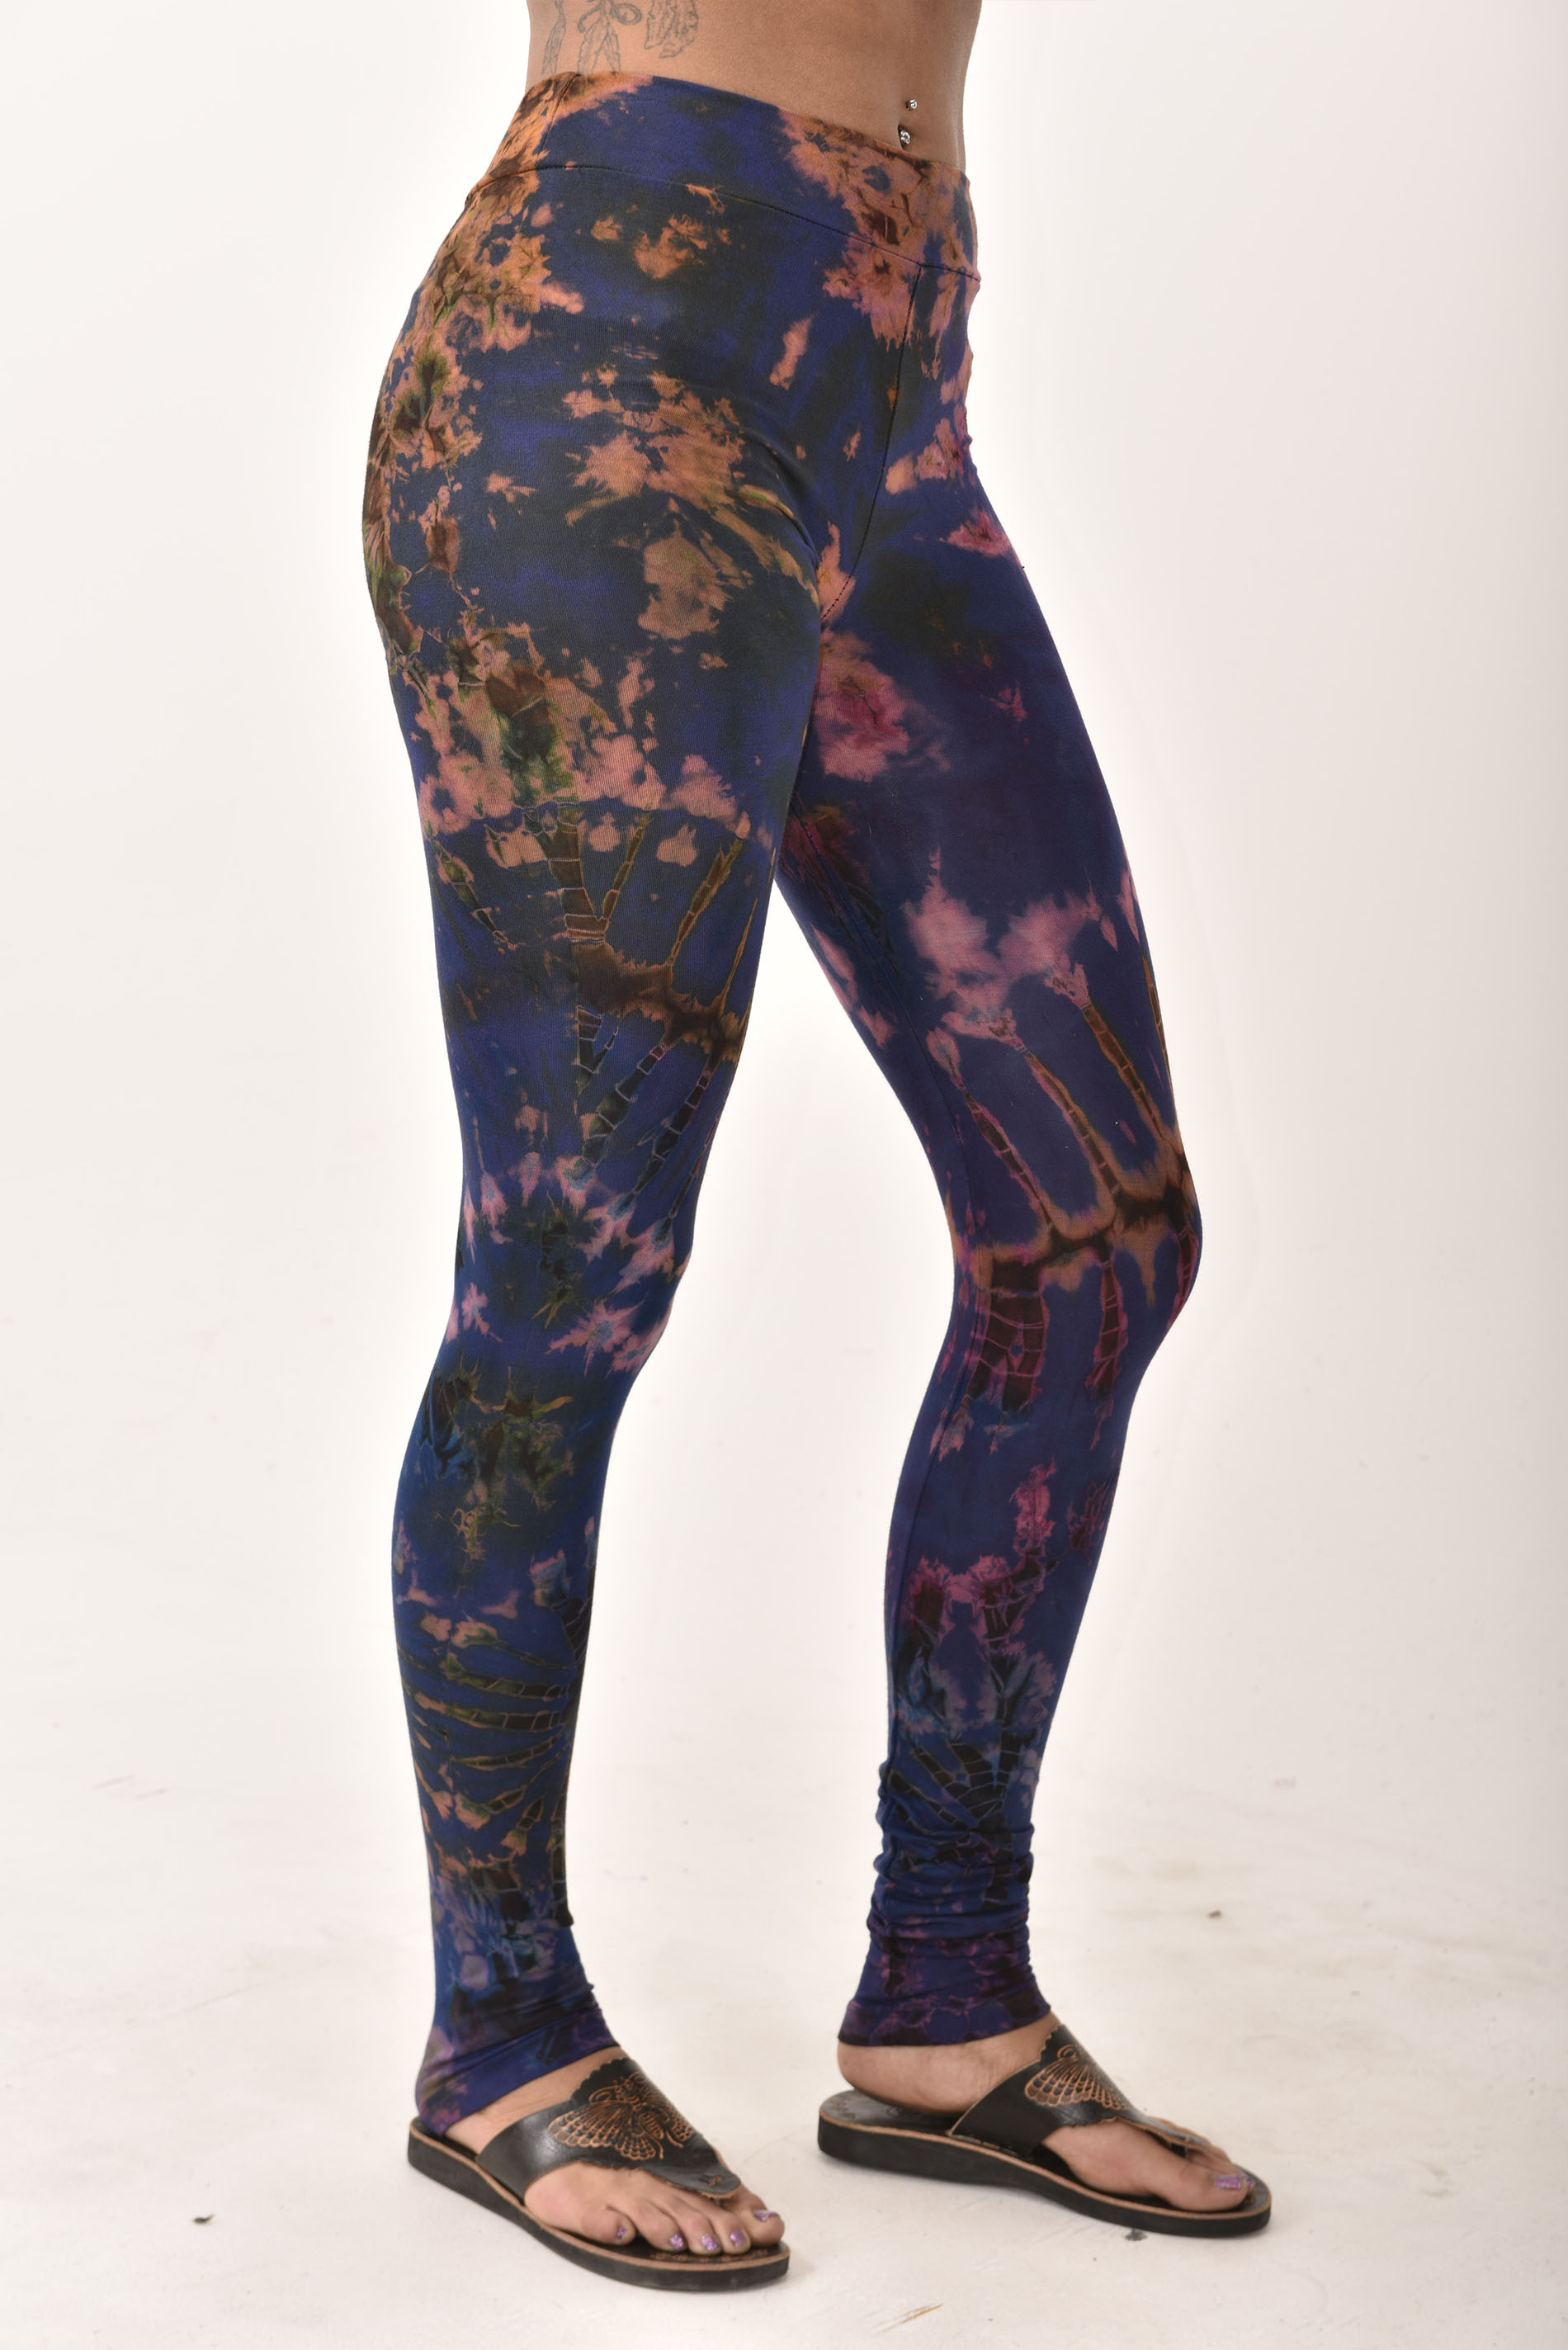 Hand Painted Tie Dye deluxe Leggings on higher quality Rayon/Spandex blend, Purple Multi